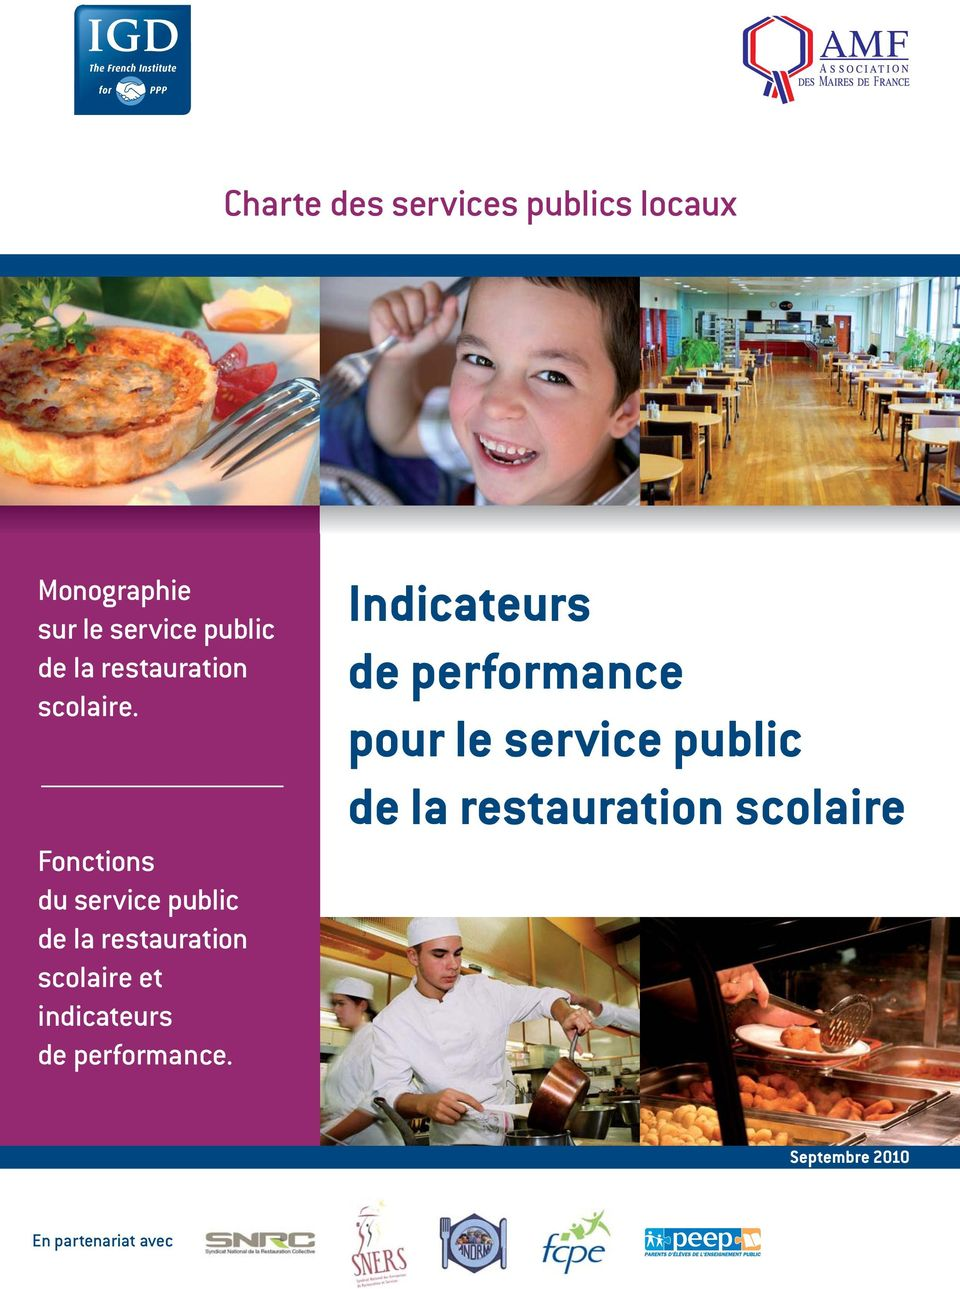 Fonctions du service public de la restauration scolaire et indicateurs de